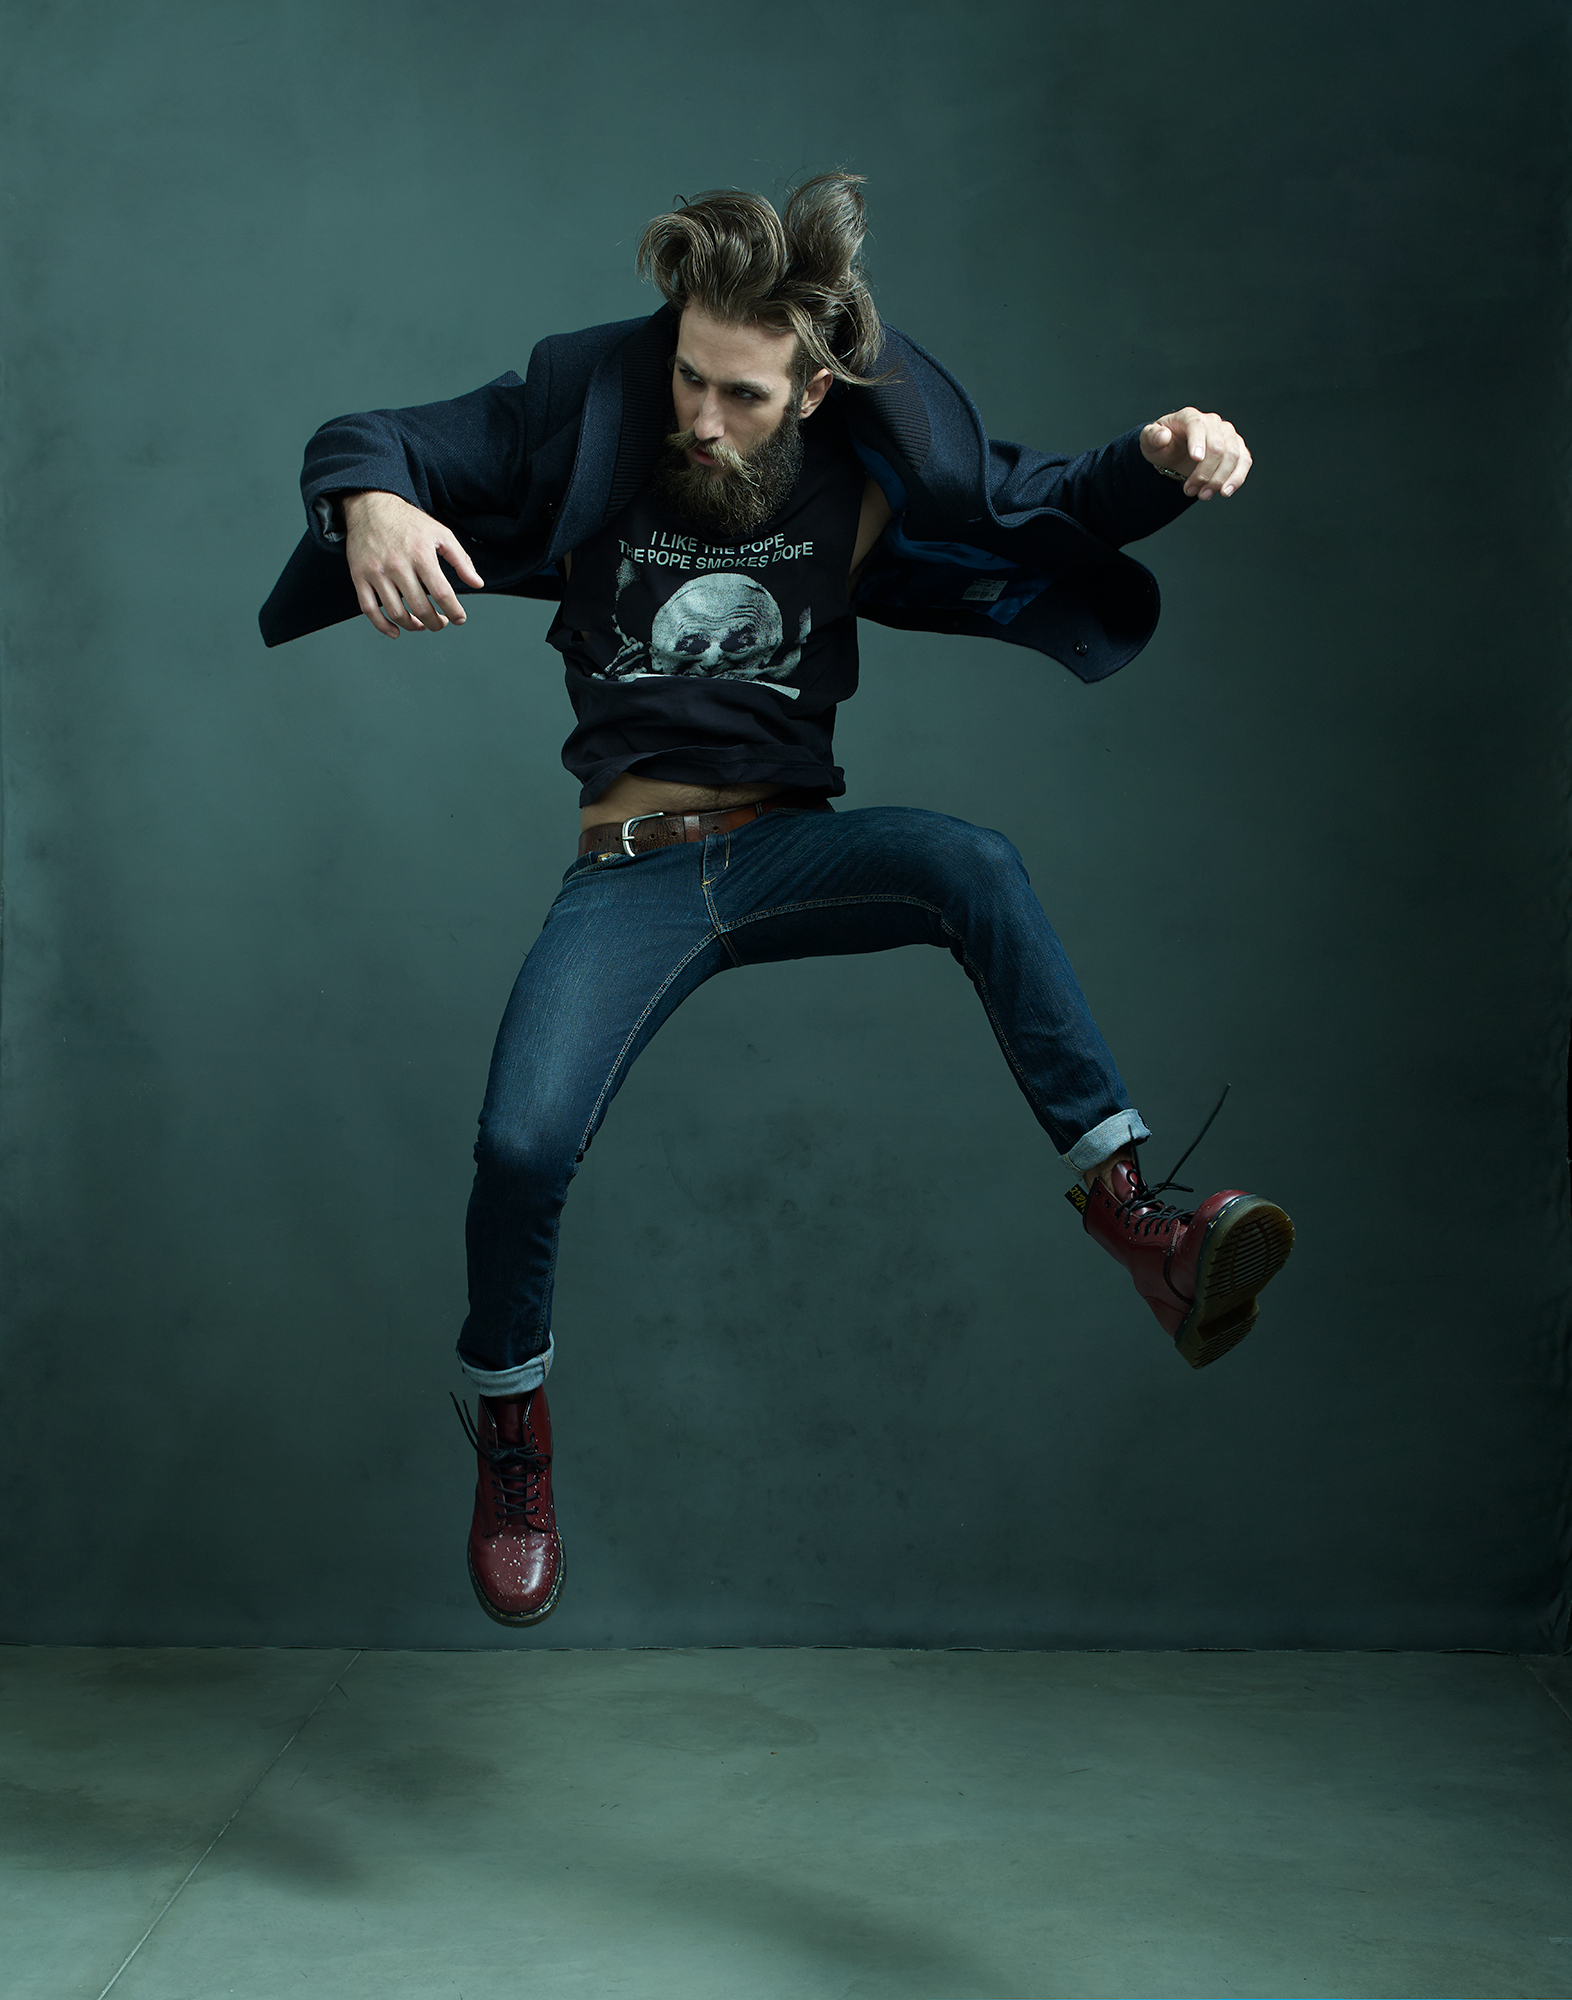 Robert-Ascroft-Jump-color-04